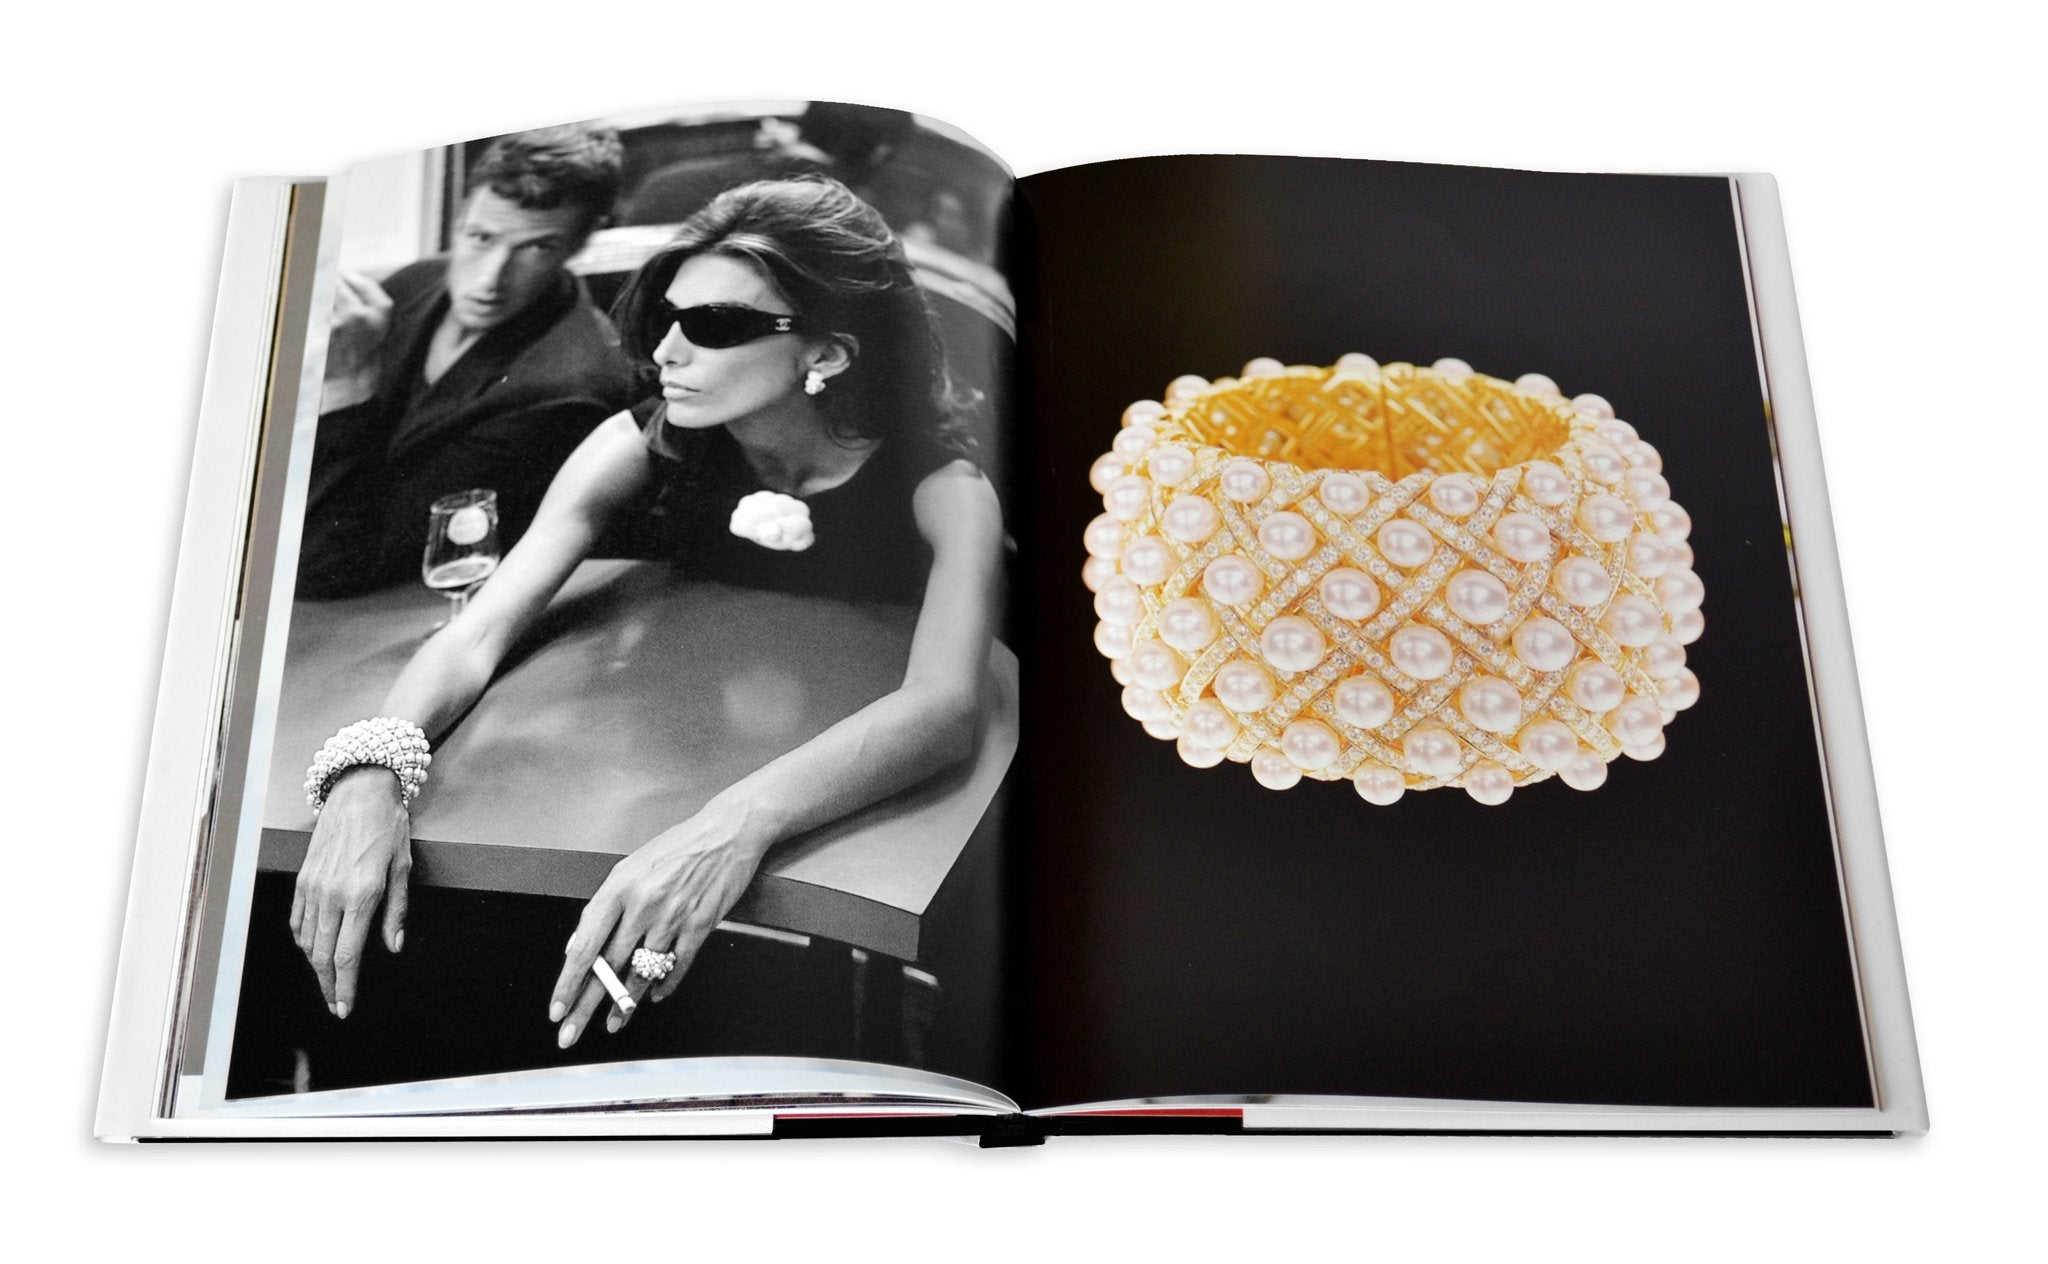 Chanel 3-Book Slipcase - Assouline